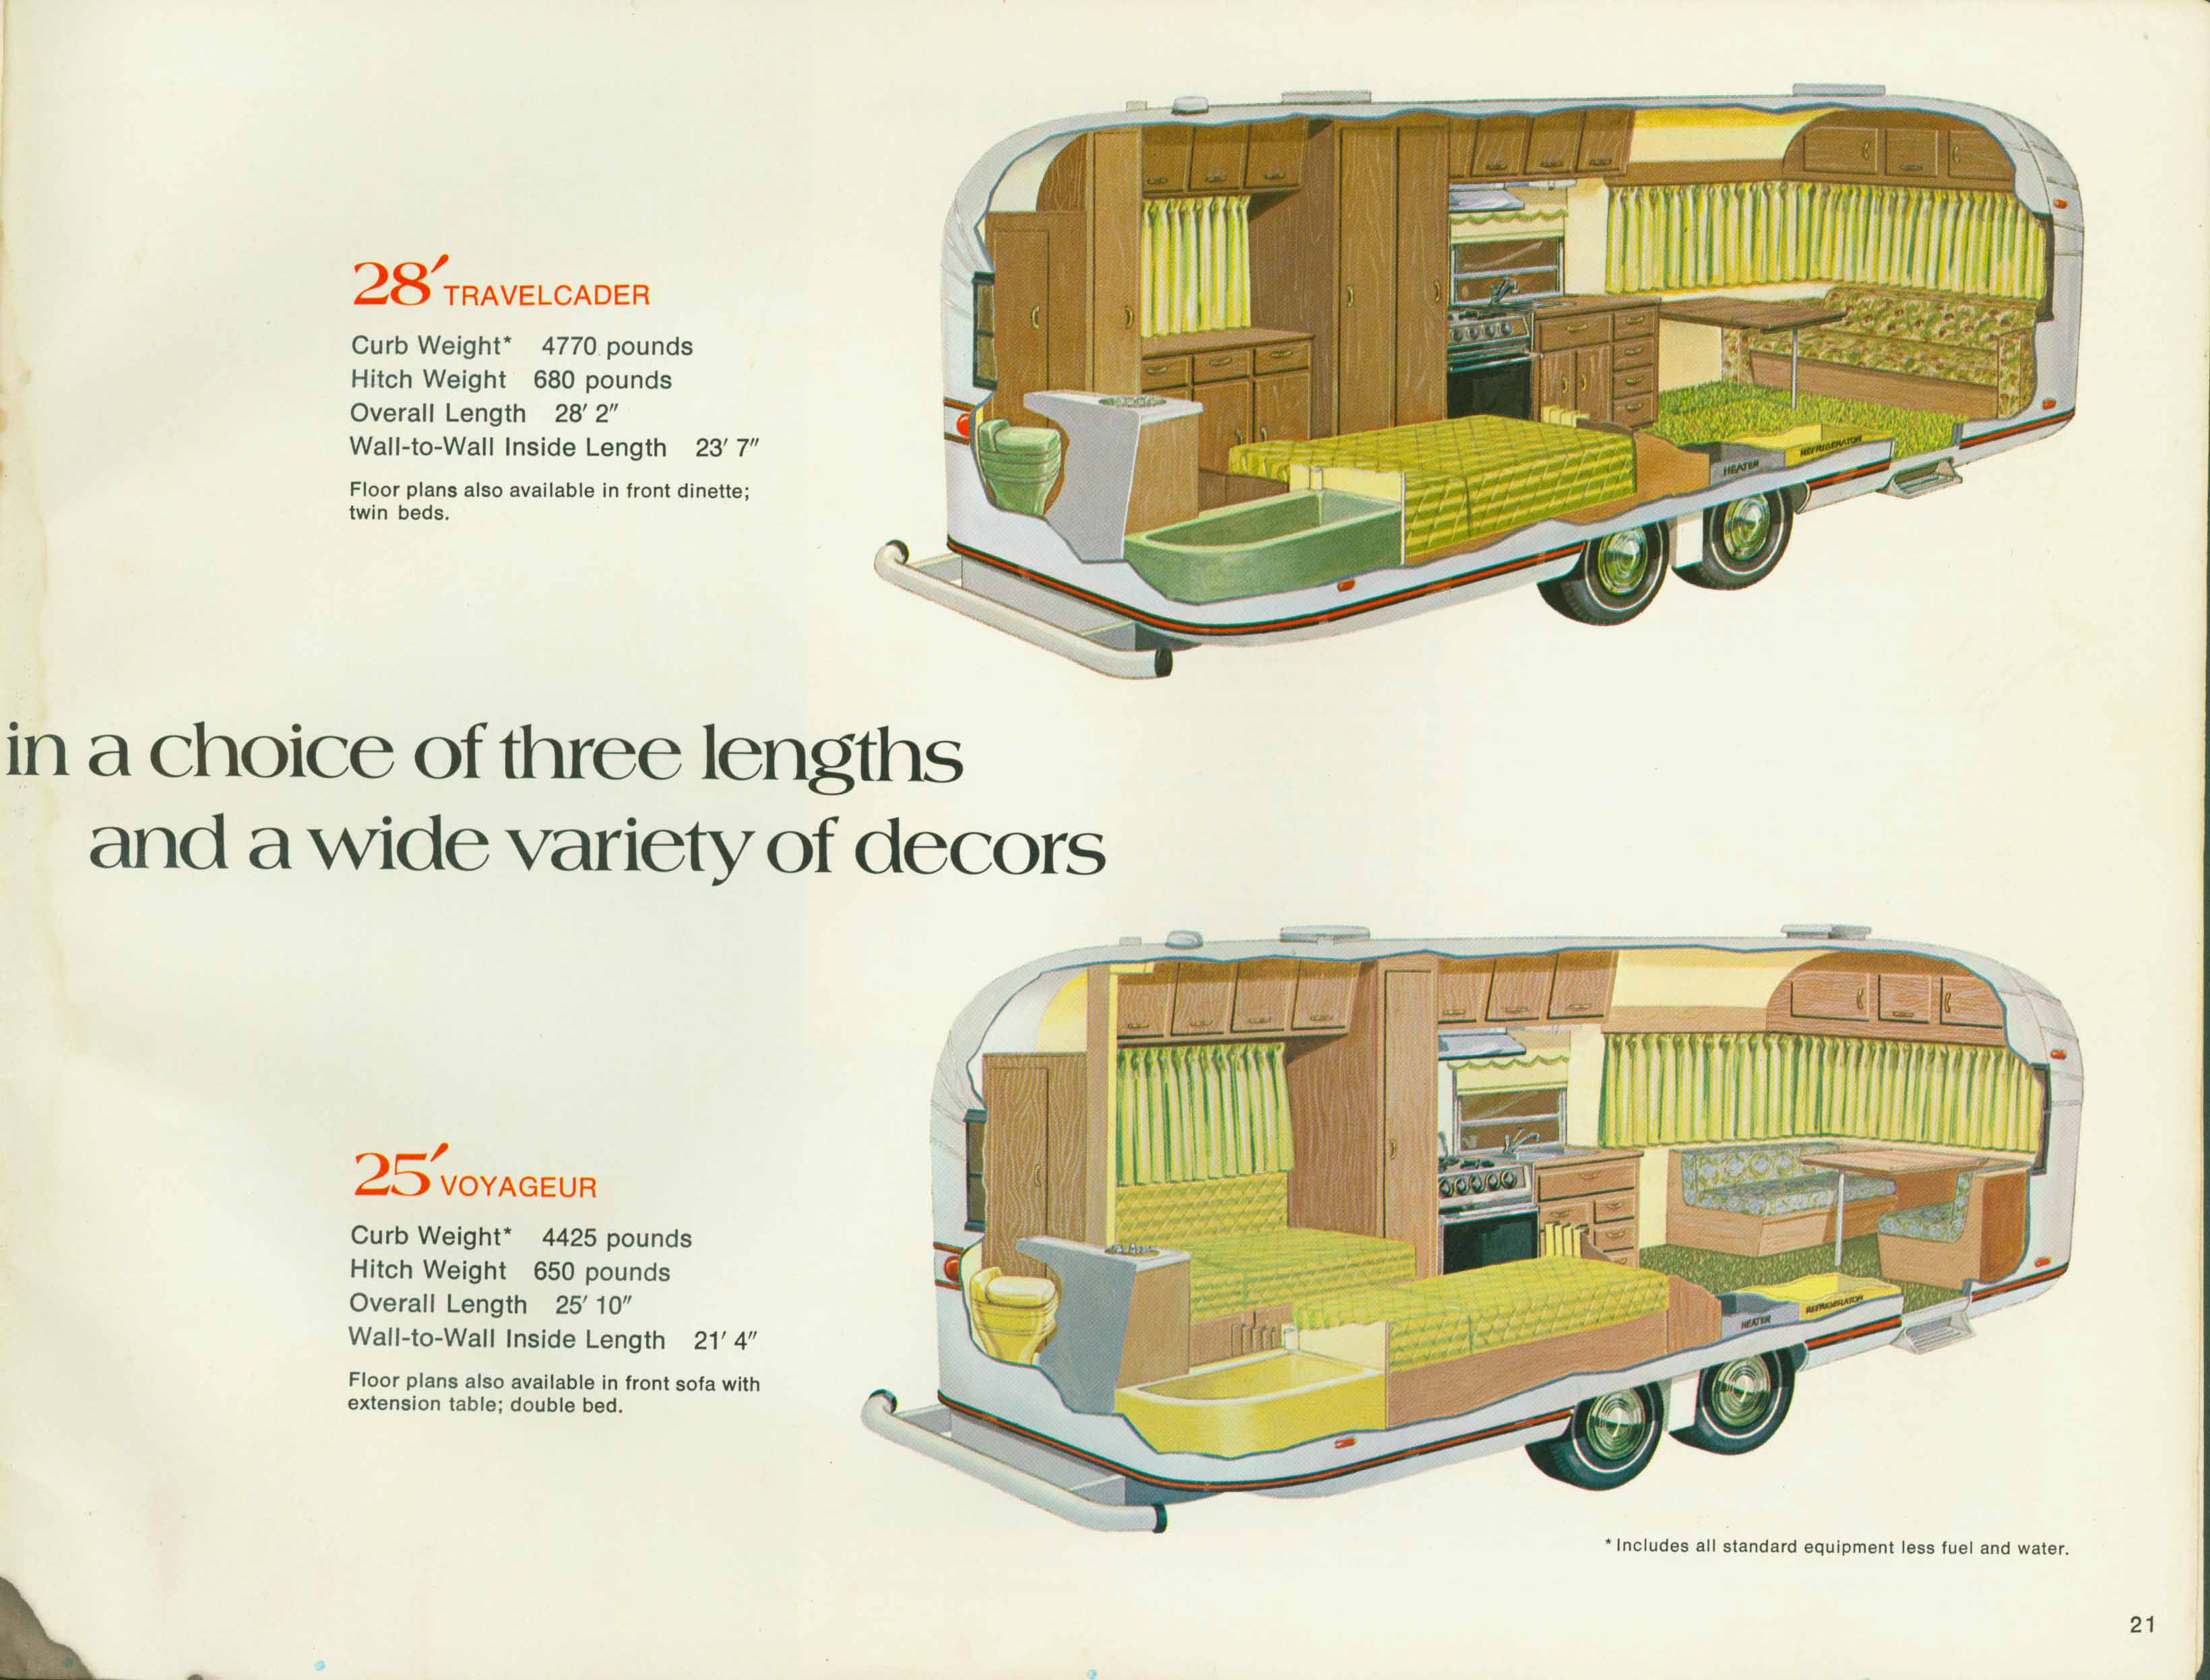 1972 Avion Travel Trailers  28 U0026 39  Travelcader With Optional Double Bed  Instead Of Two Singles